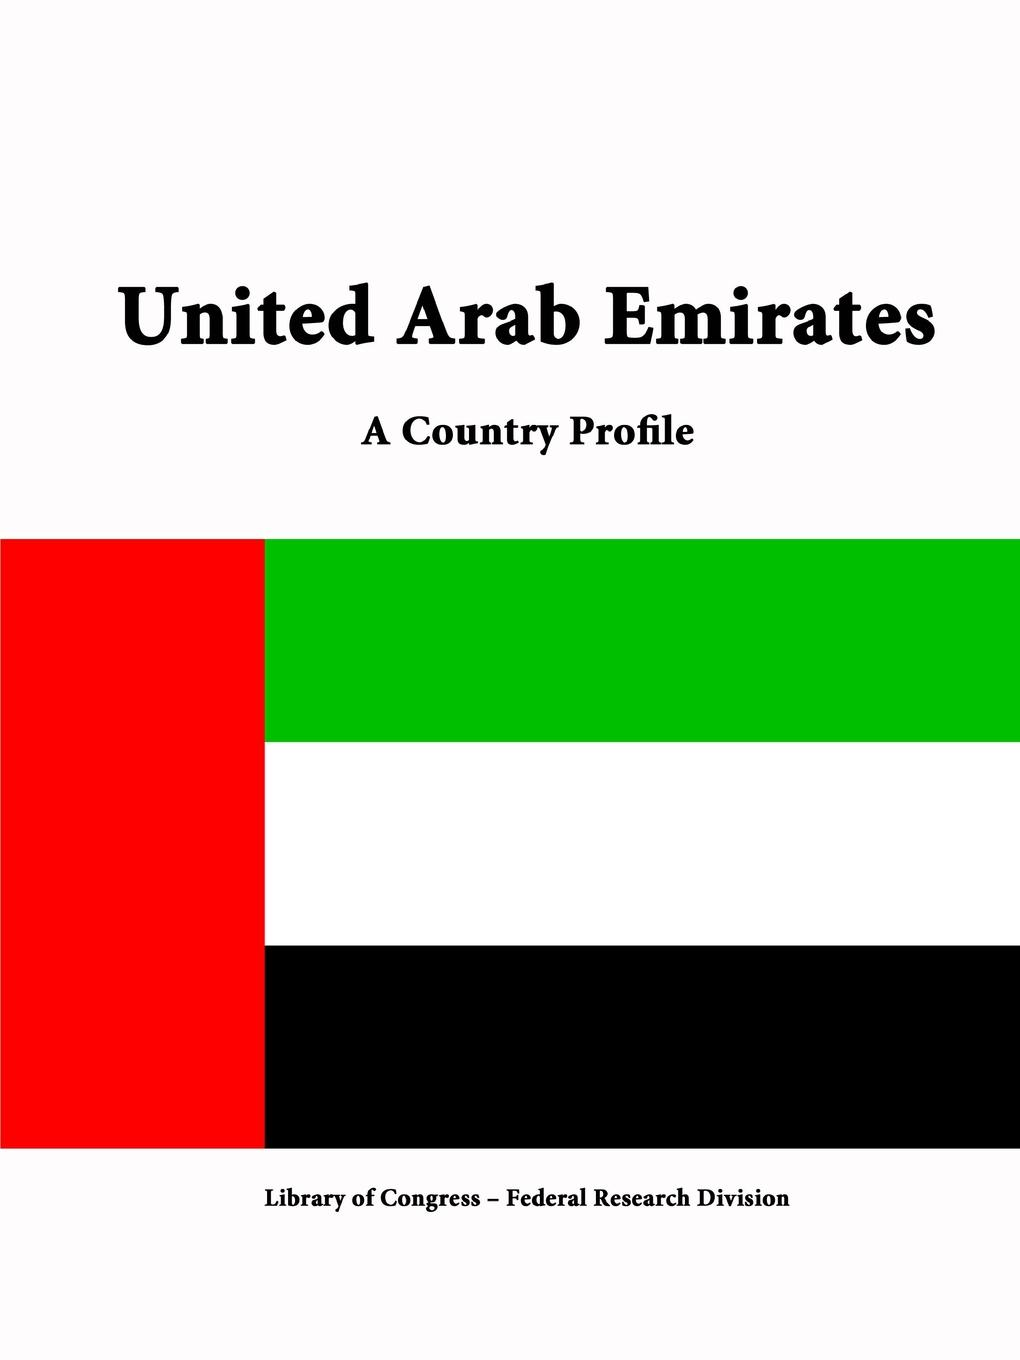 Library of Congress, Federal Research Division United Arab Emirates. A Country Profile library of congress federal research division north korea a country profile